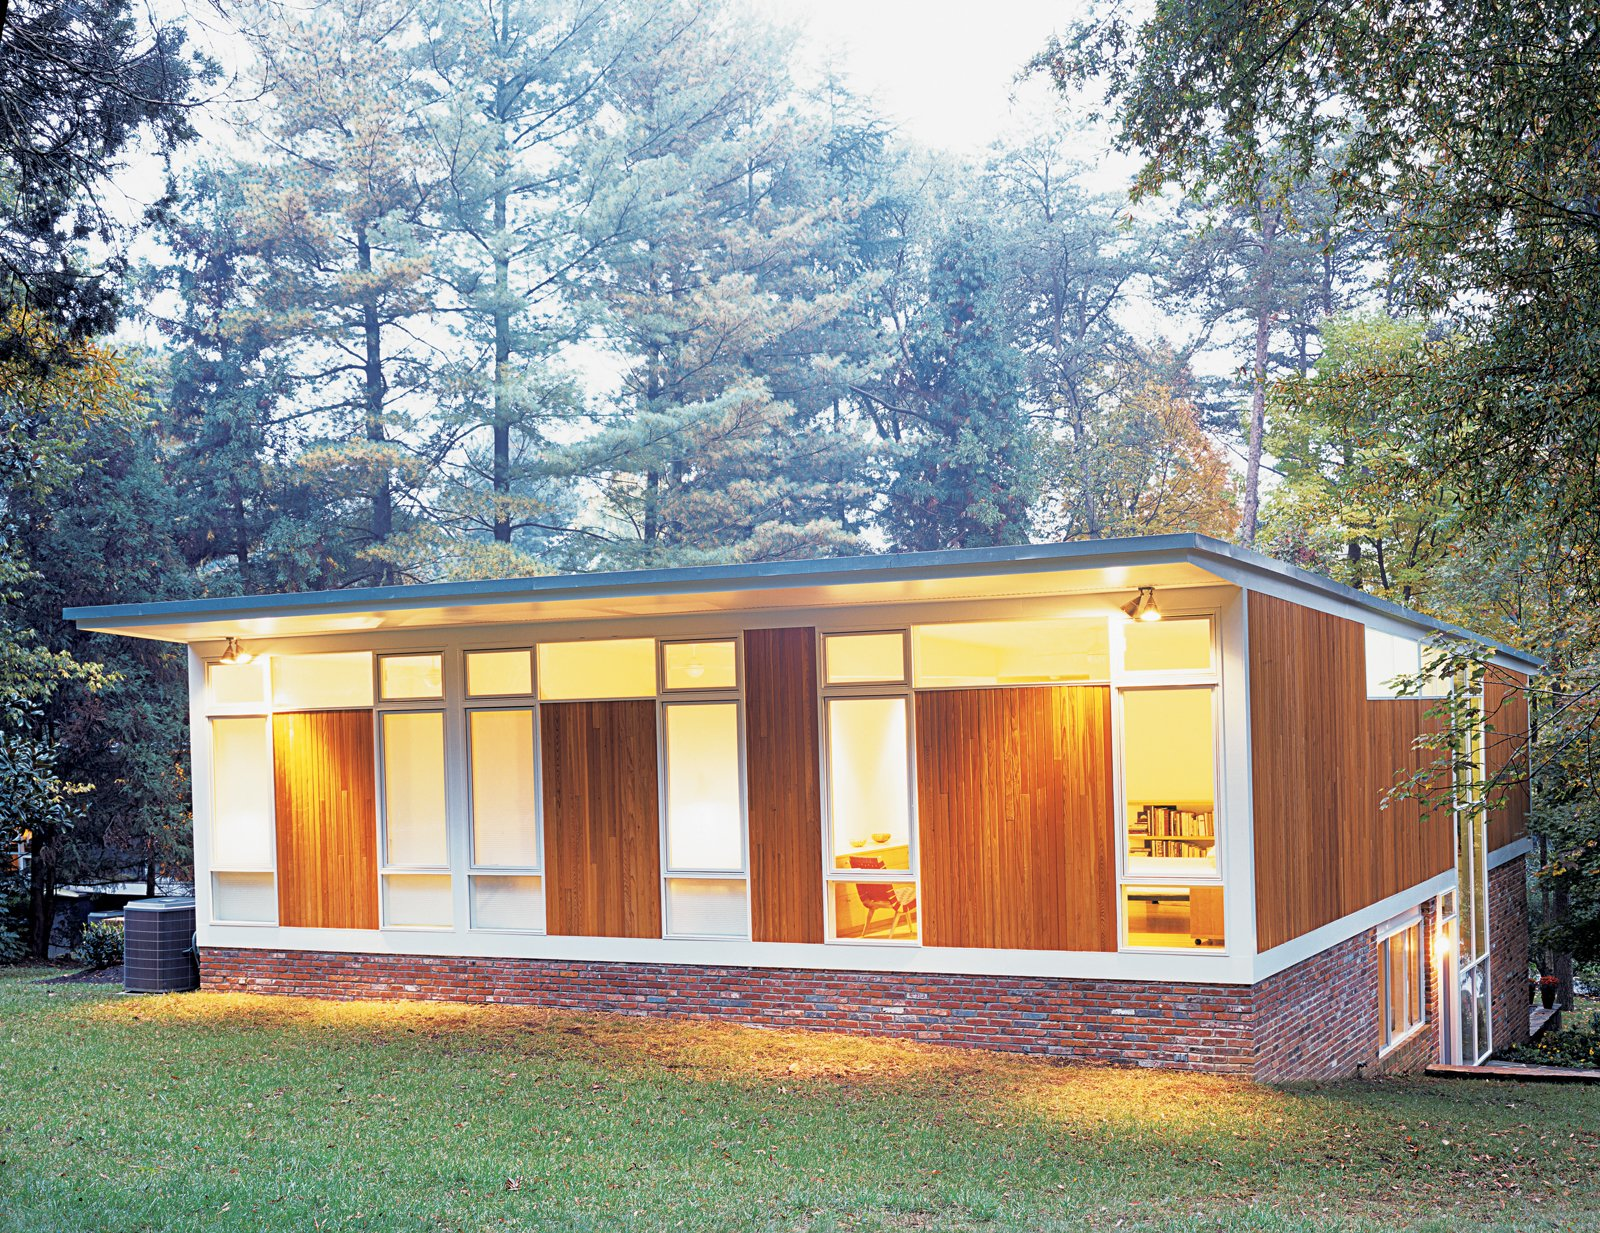 Articles about community vision on Dwell.com